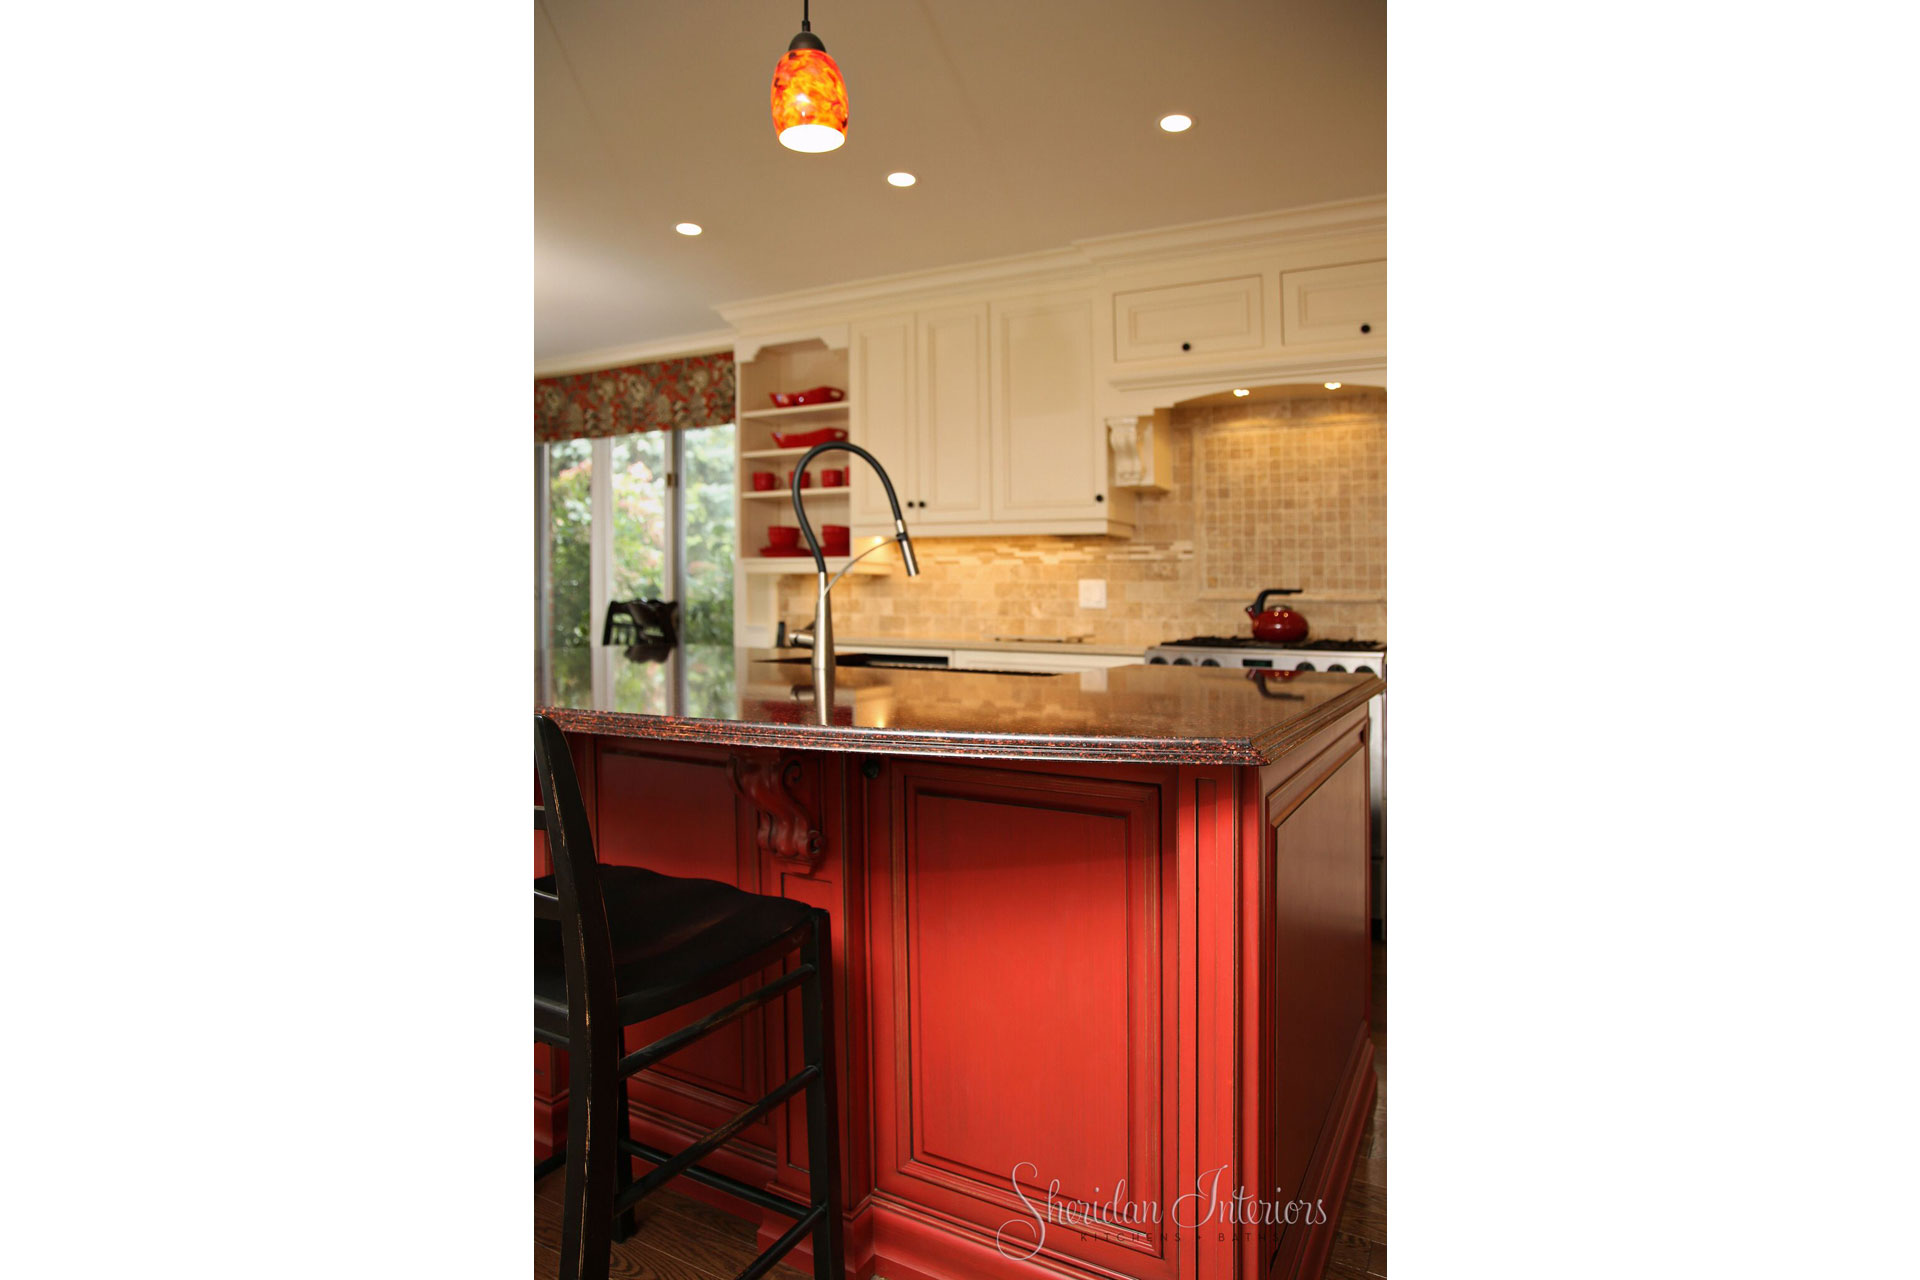 White Kitchen with Red Island and Black Stools - Sheridan interiors